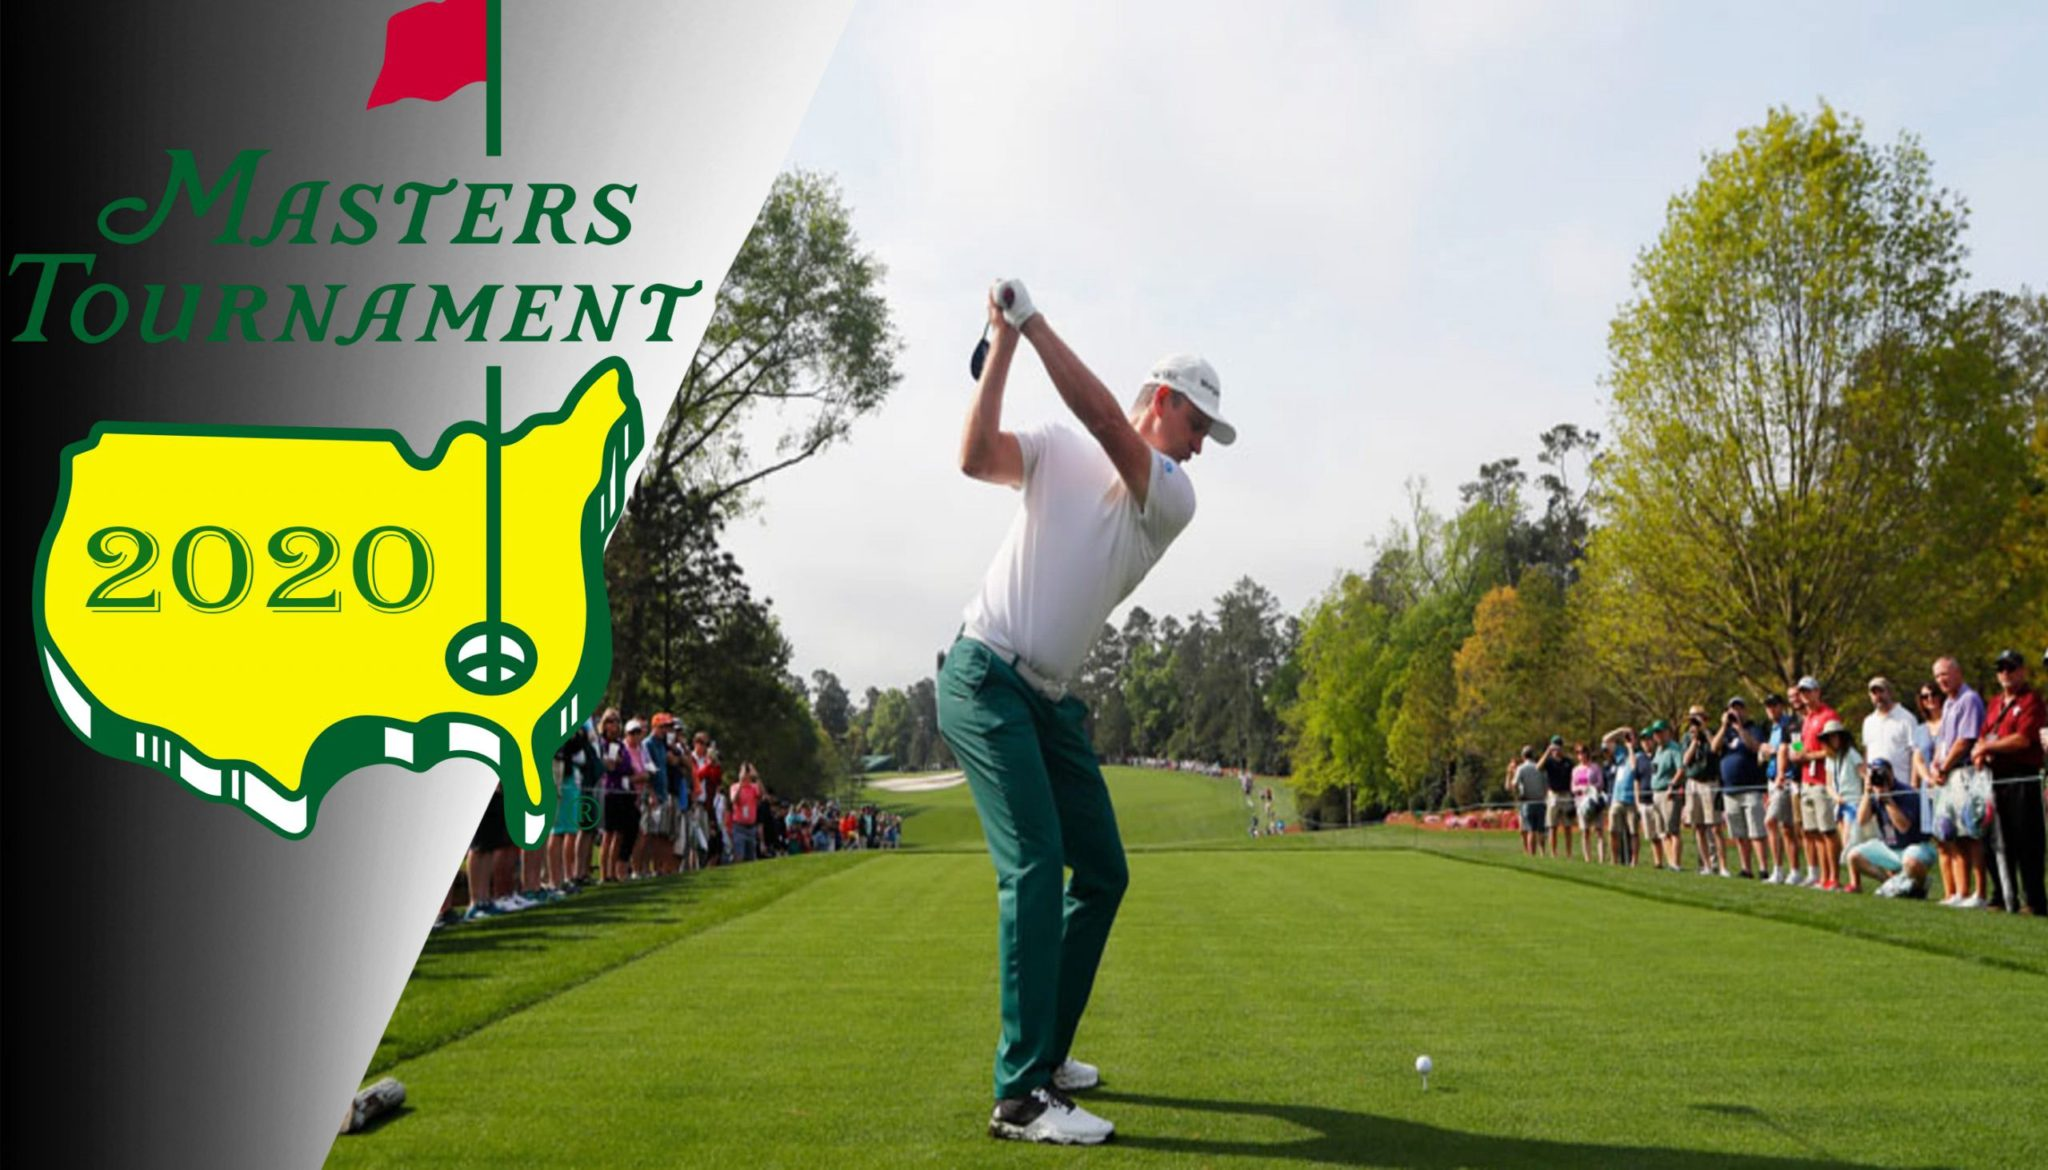 Masters 2020 Golf Tournament